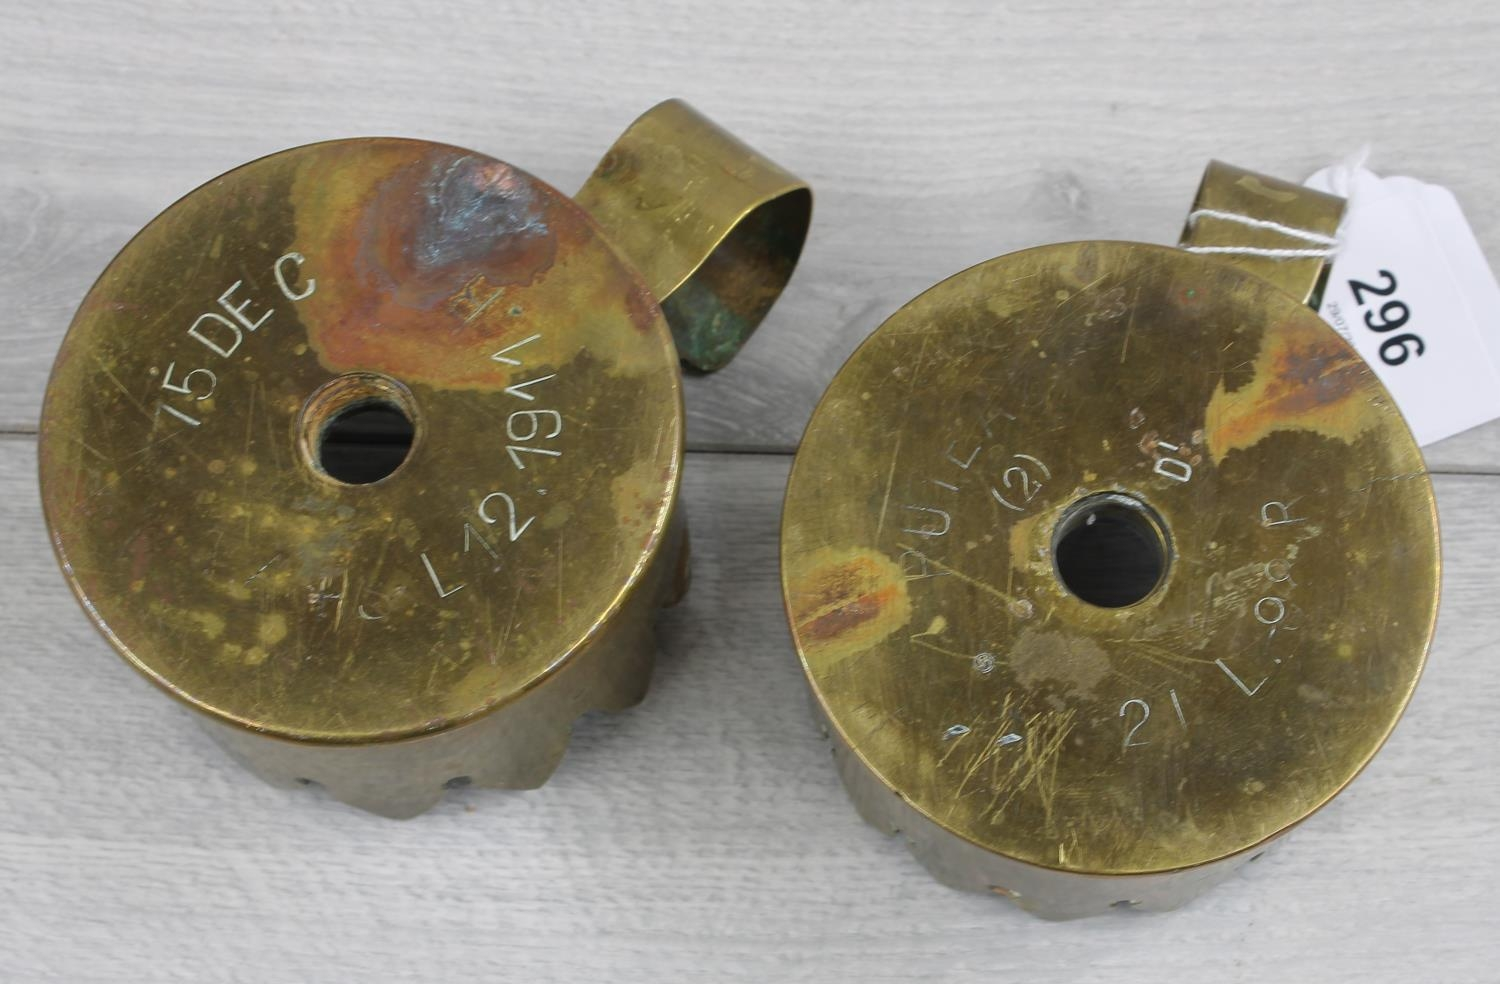 """Pair of 'trench art' chamber sticks modelled from shell casings, 3.75"""" diameter; together with cased - Image 2 of 2"""